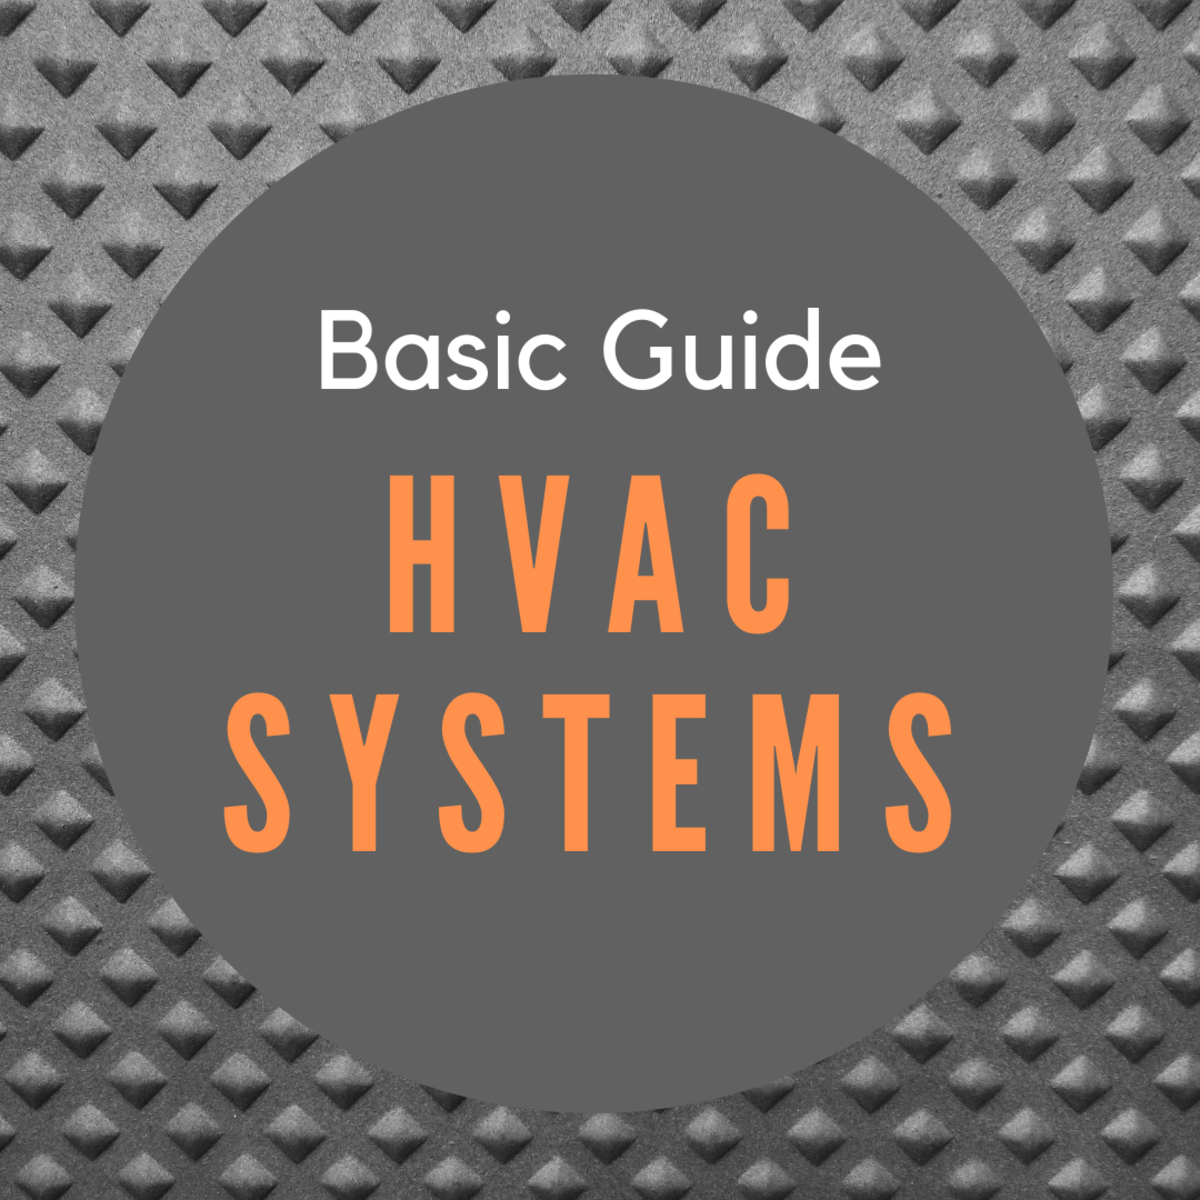 Understand the basic components of an HVAC system and their functions.